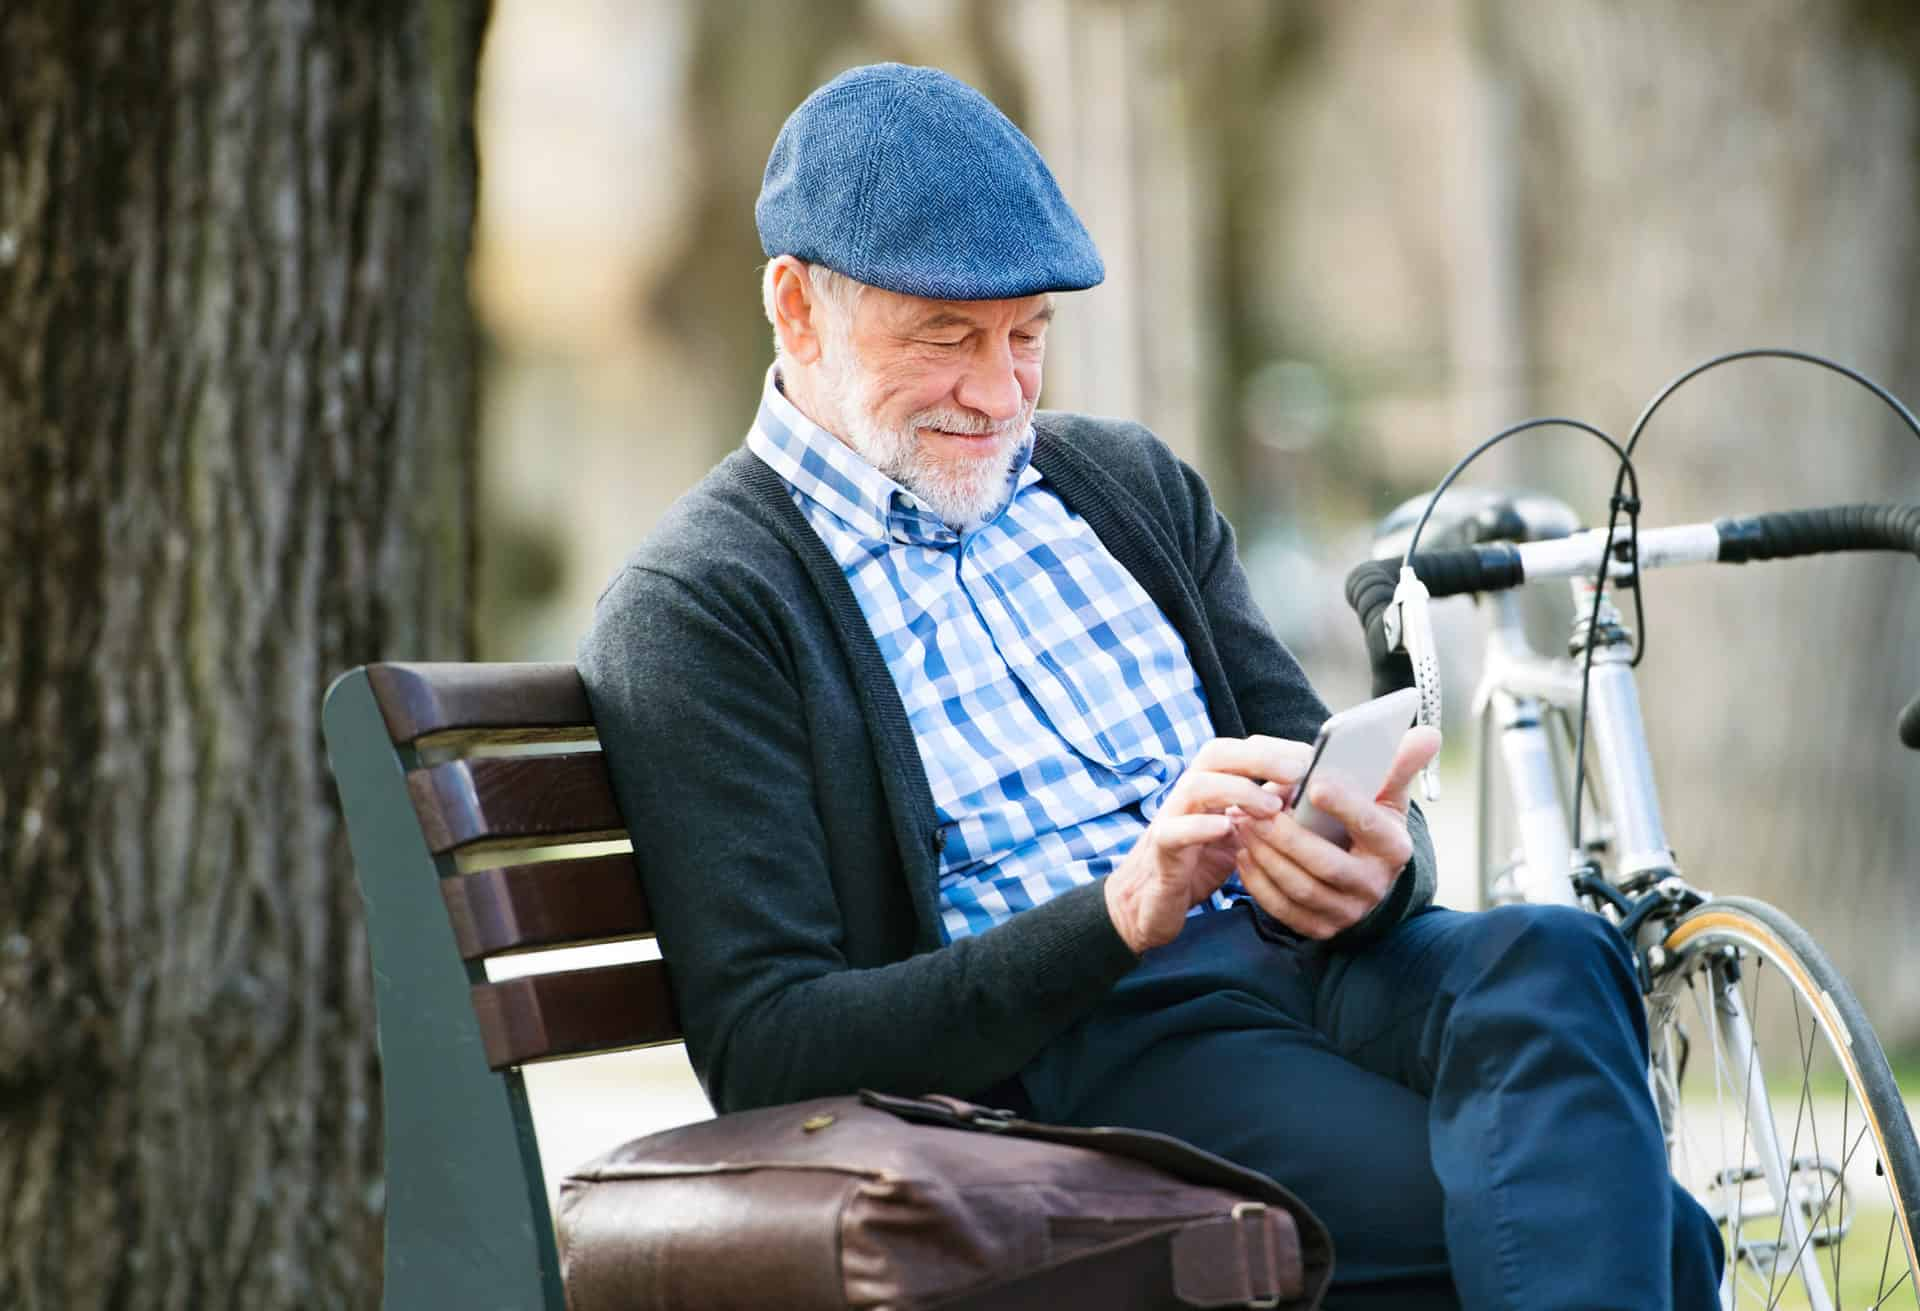 Active senior resting on park bench to check his smartphone